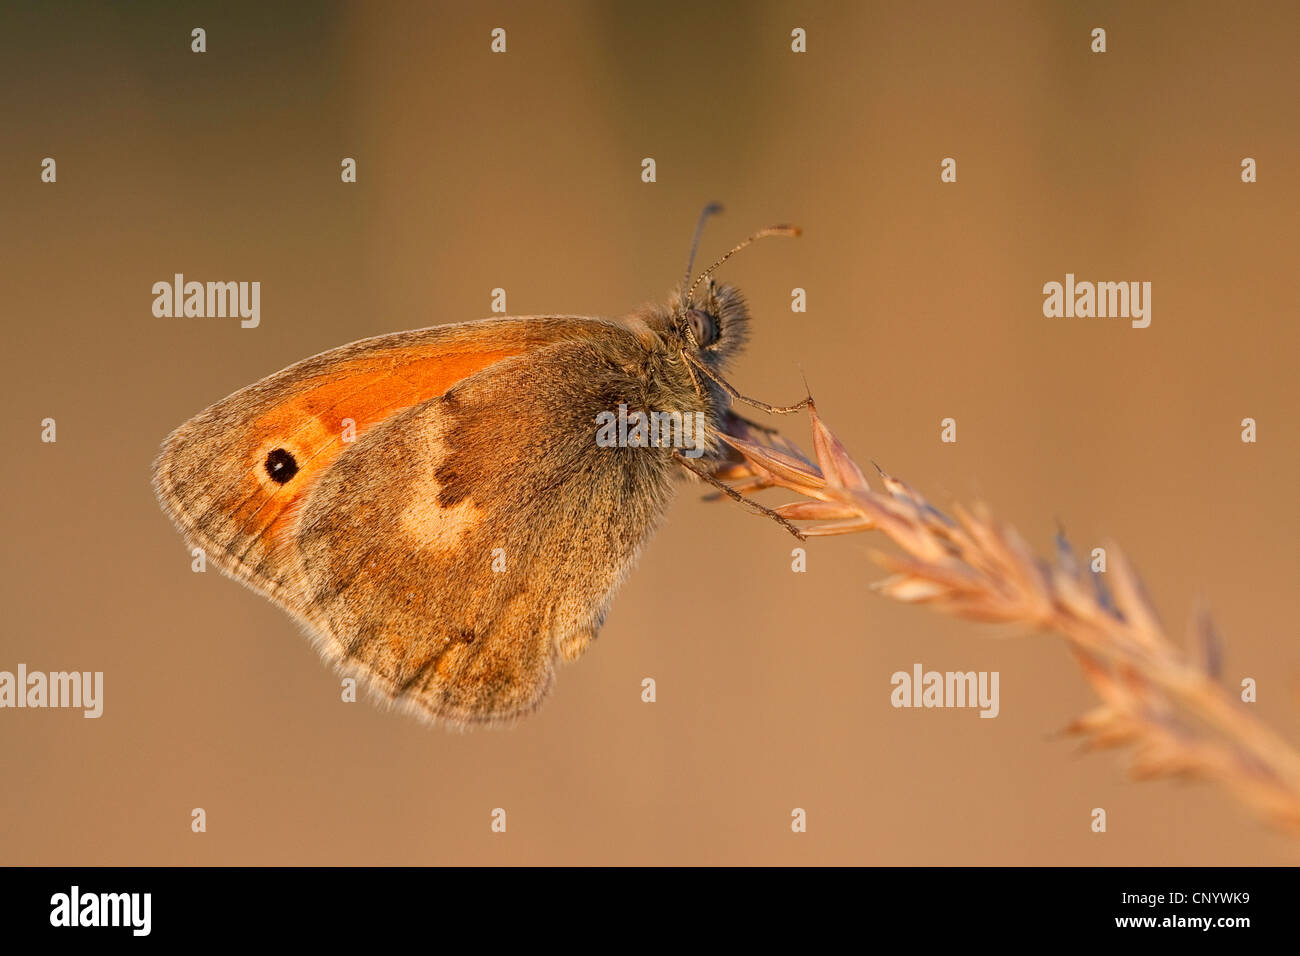 small heath (Coenonympha pamphilus), sitting at a grass ear, Germany - Stock Image